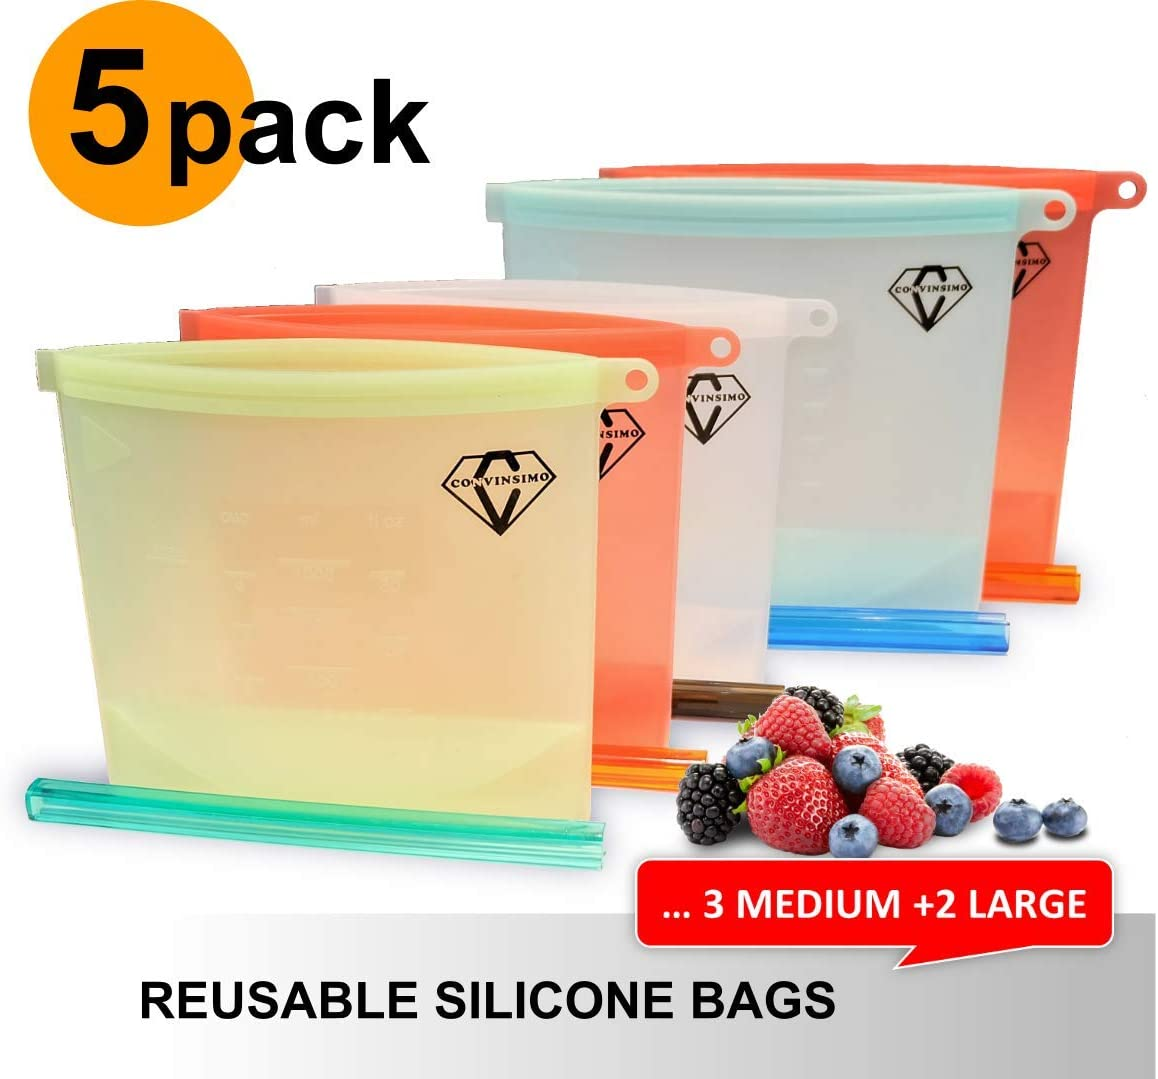 Reusable Leakproof Silicone FREEZER FOOD BAGS in Eco Friendly Gift Package